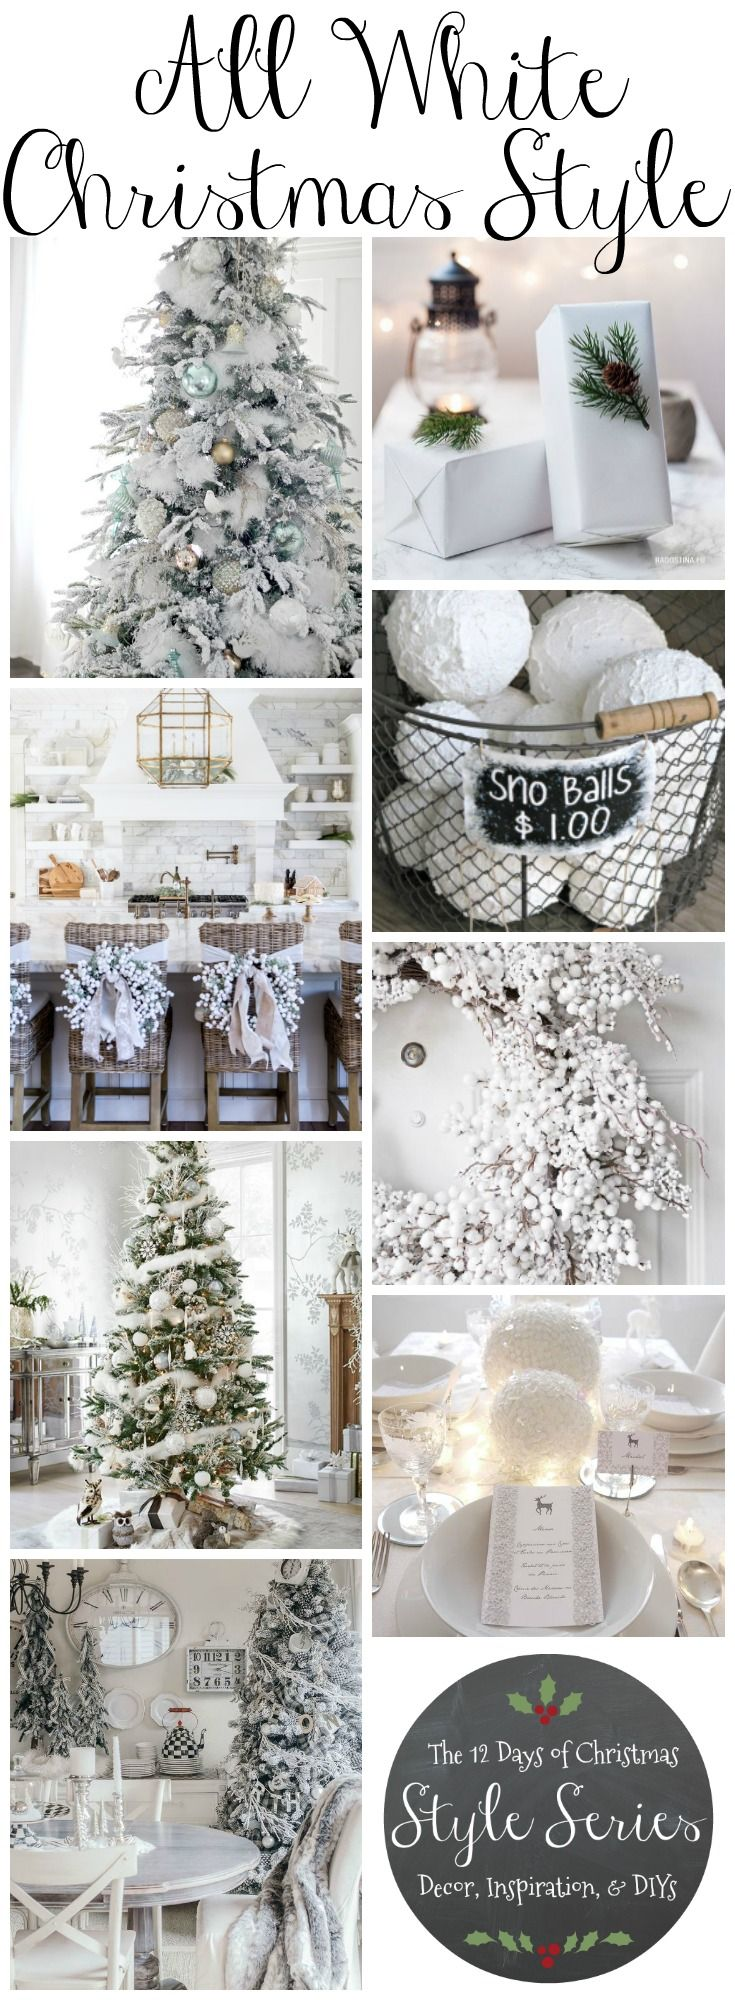 Hometalk diy christmas window decoration - Best 25 Christmas Interiors Ideas On Pinterest Scandinavian Holiday Lighting Hanging Christmas Decorations And Christmas Feeling